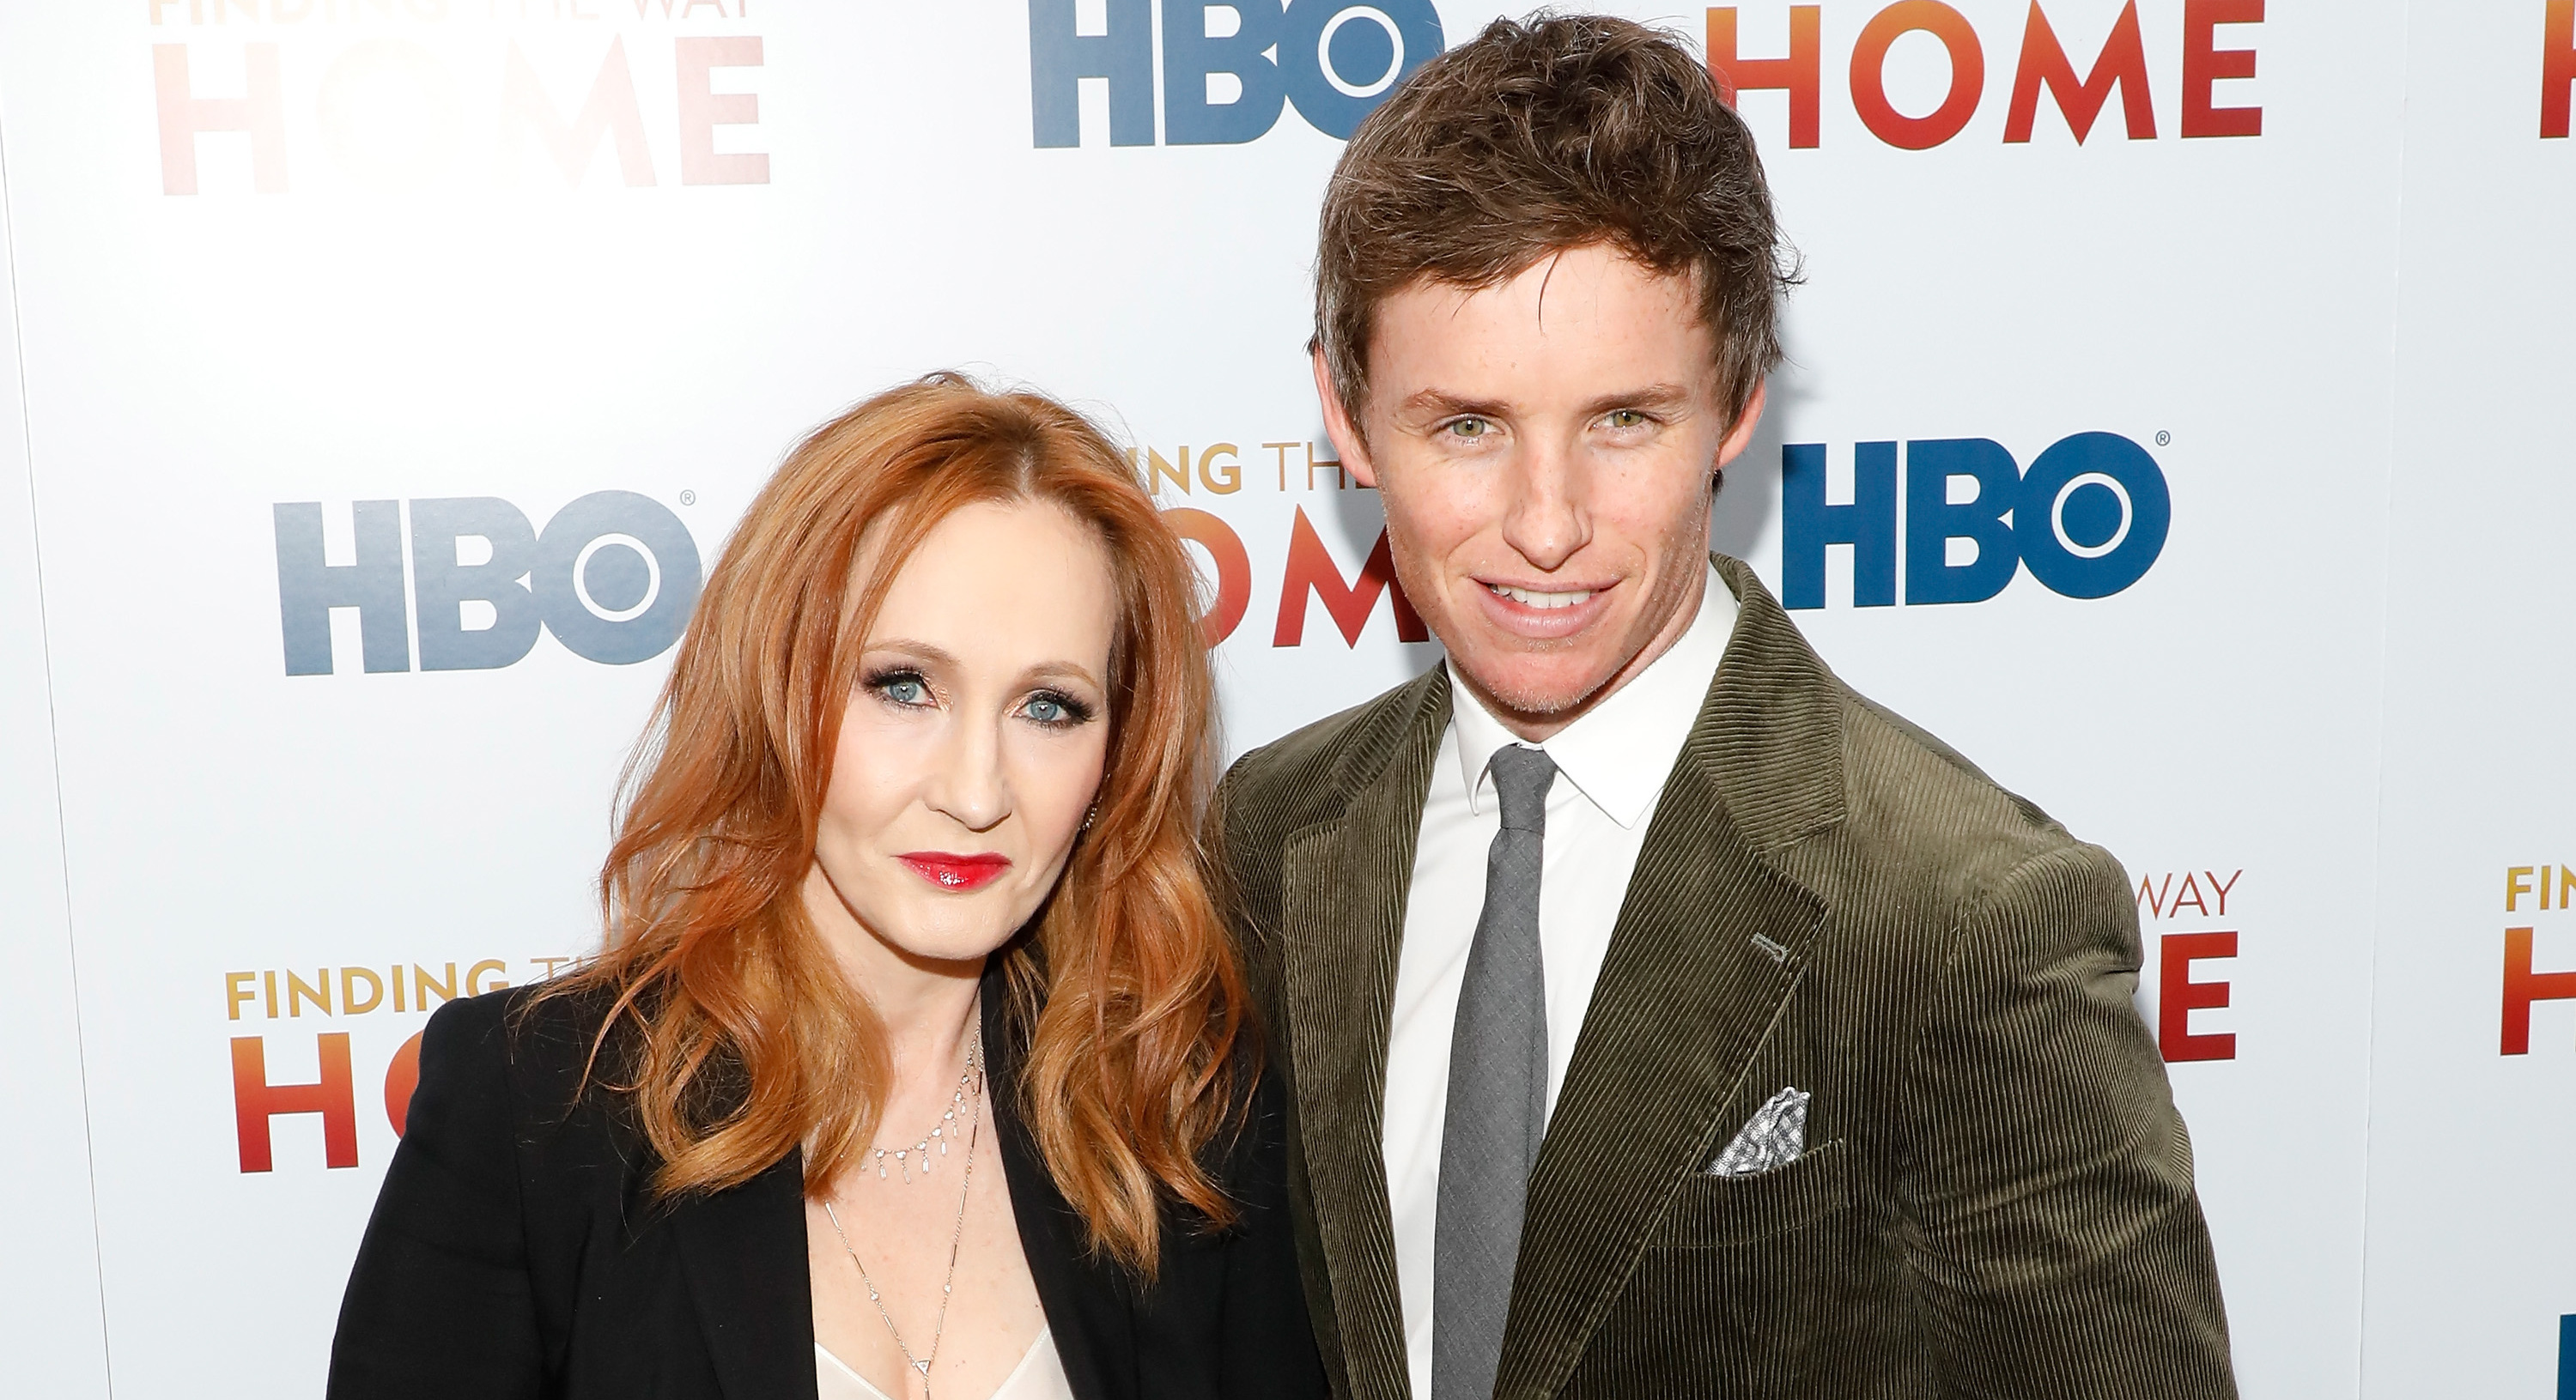 Eddie Redmayne Condemns 'Vitriol' Against Rowling